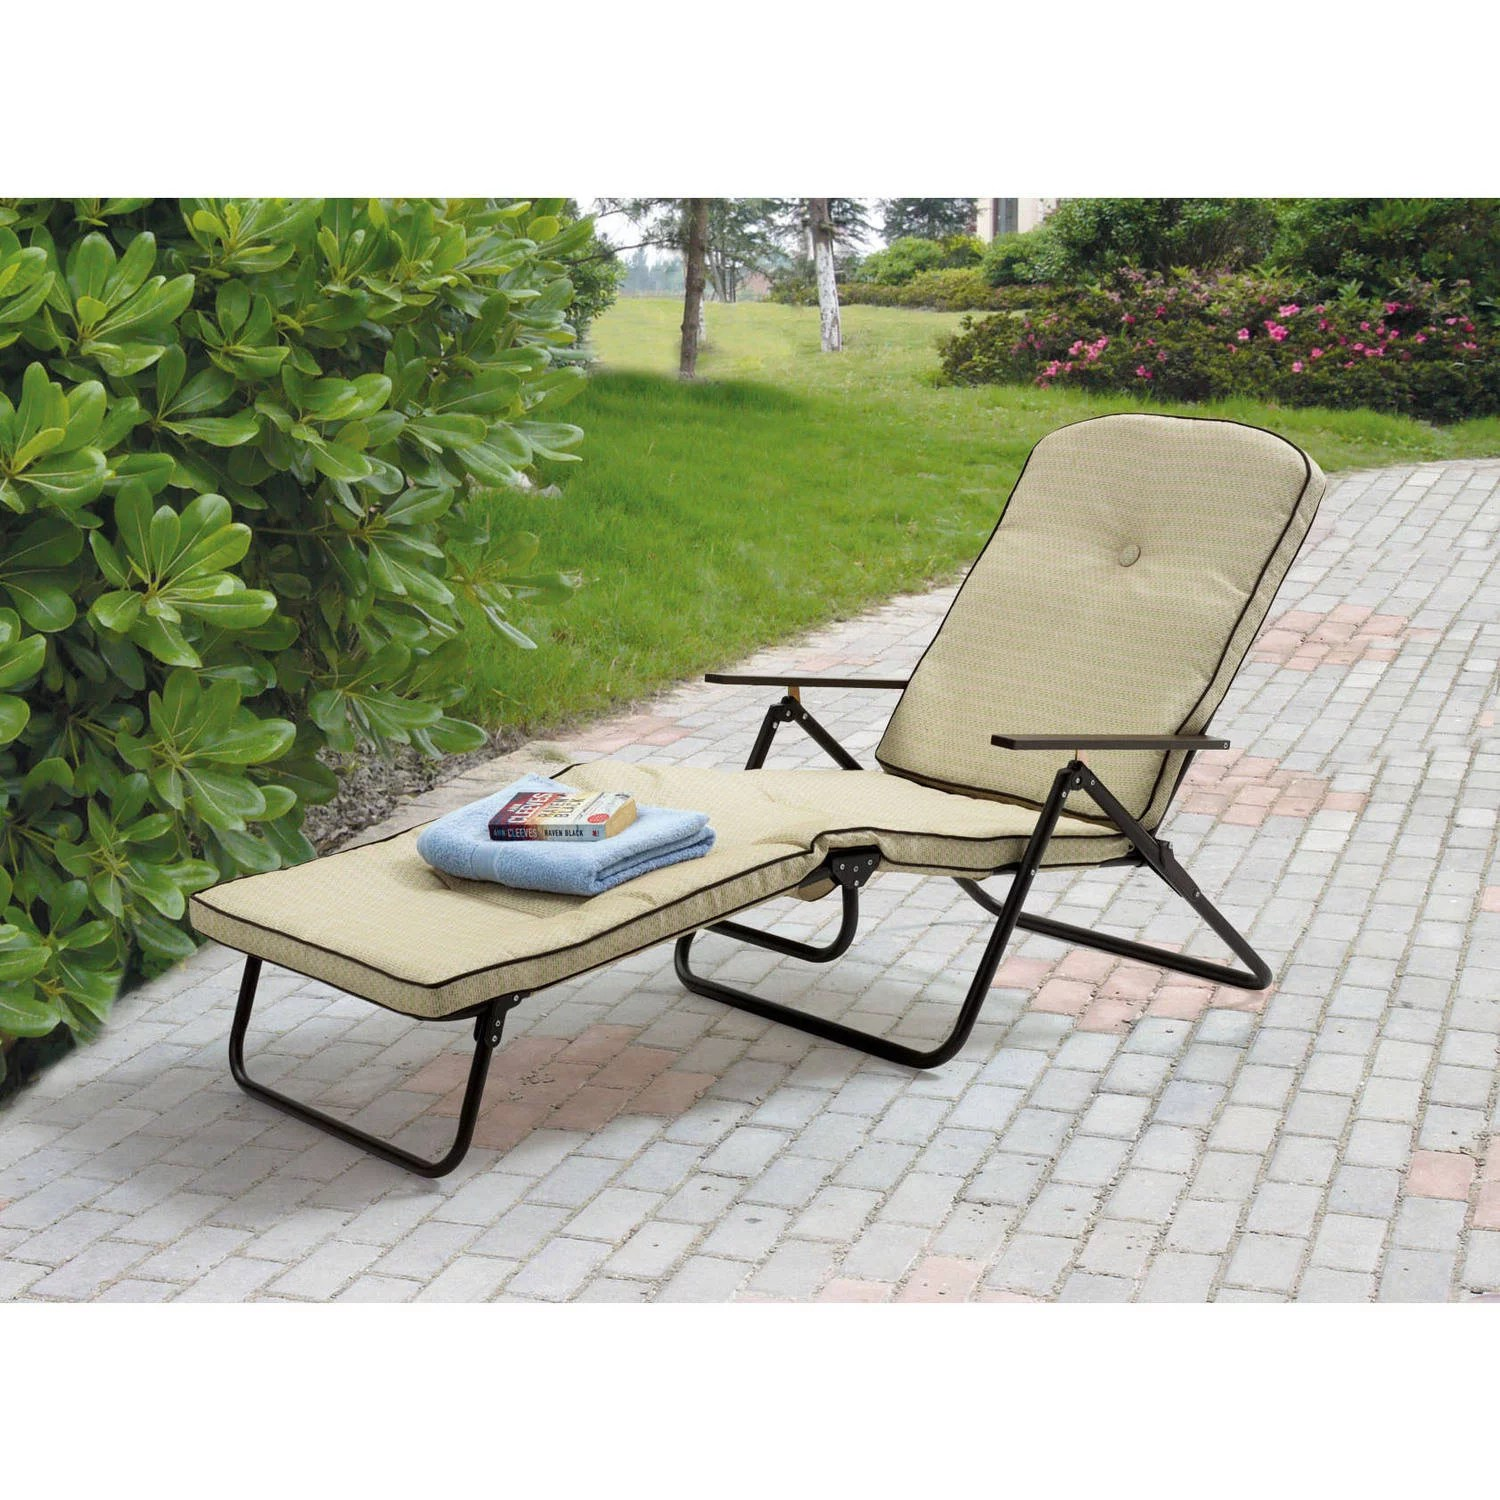 Outdoor Lounge Mainstays Sand Dune Outdoor Padded Folding Chaise Lounge Tan